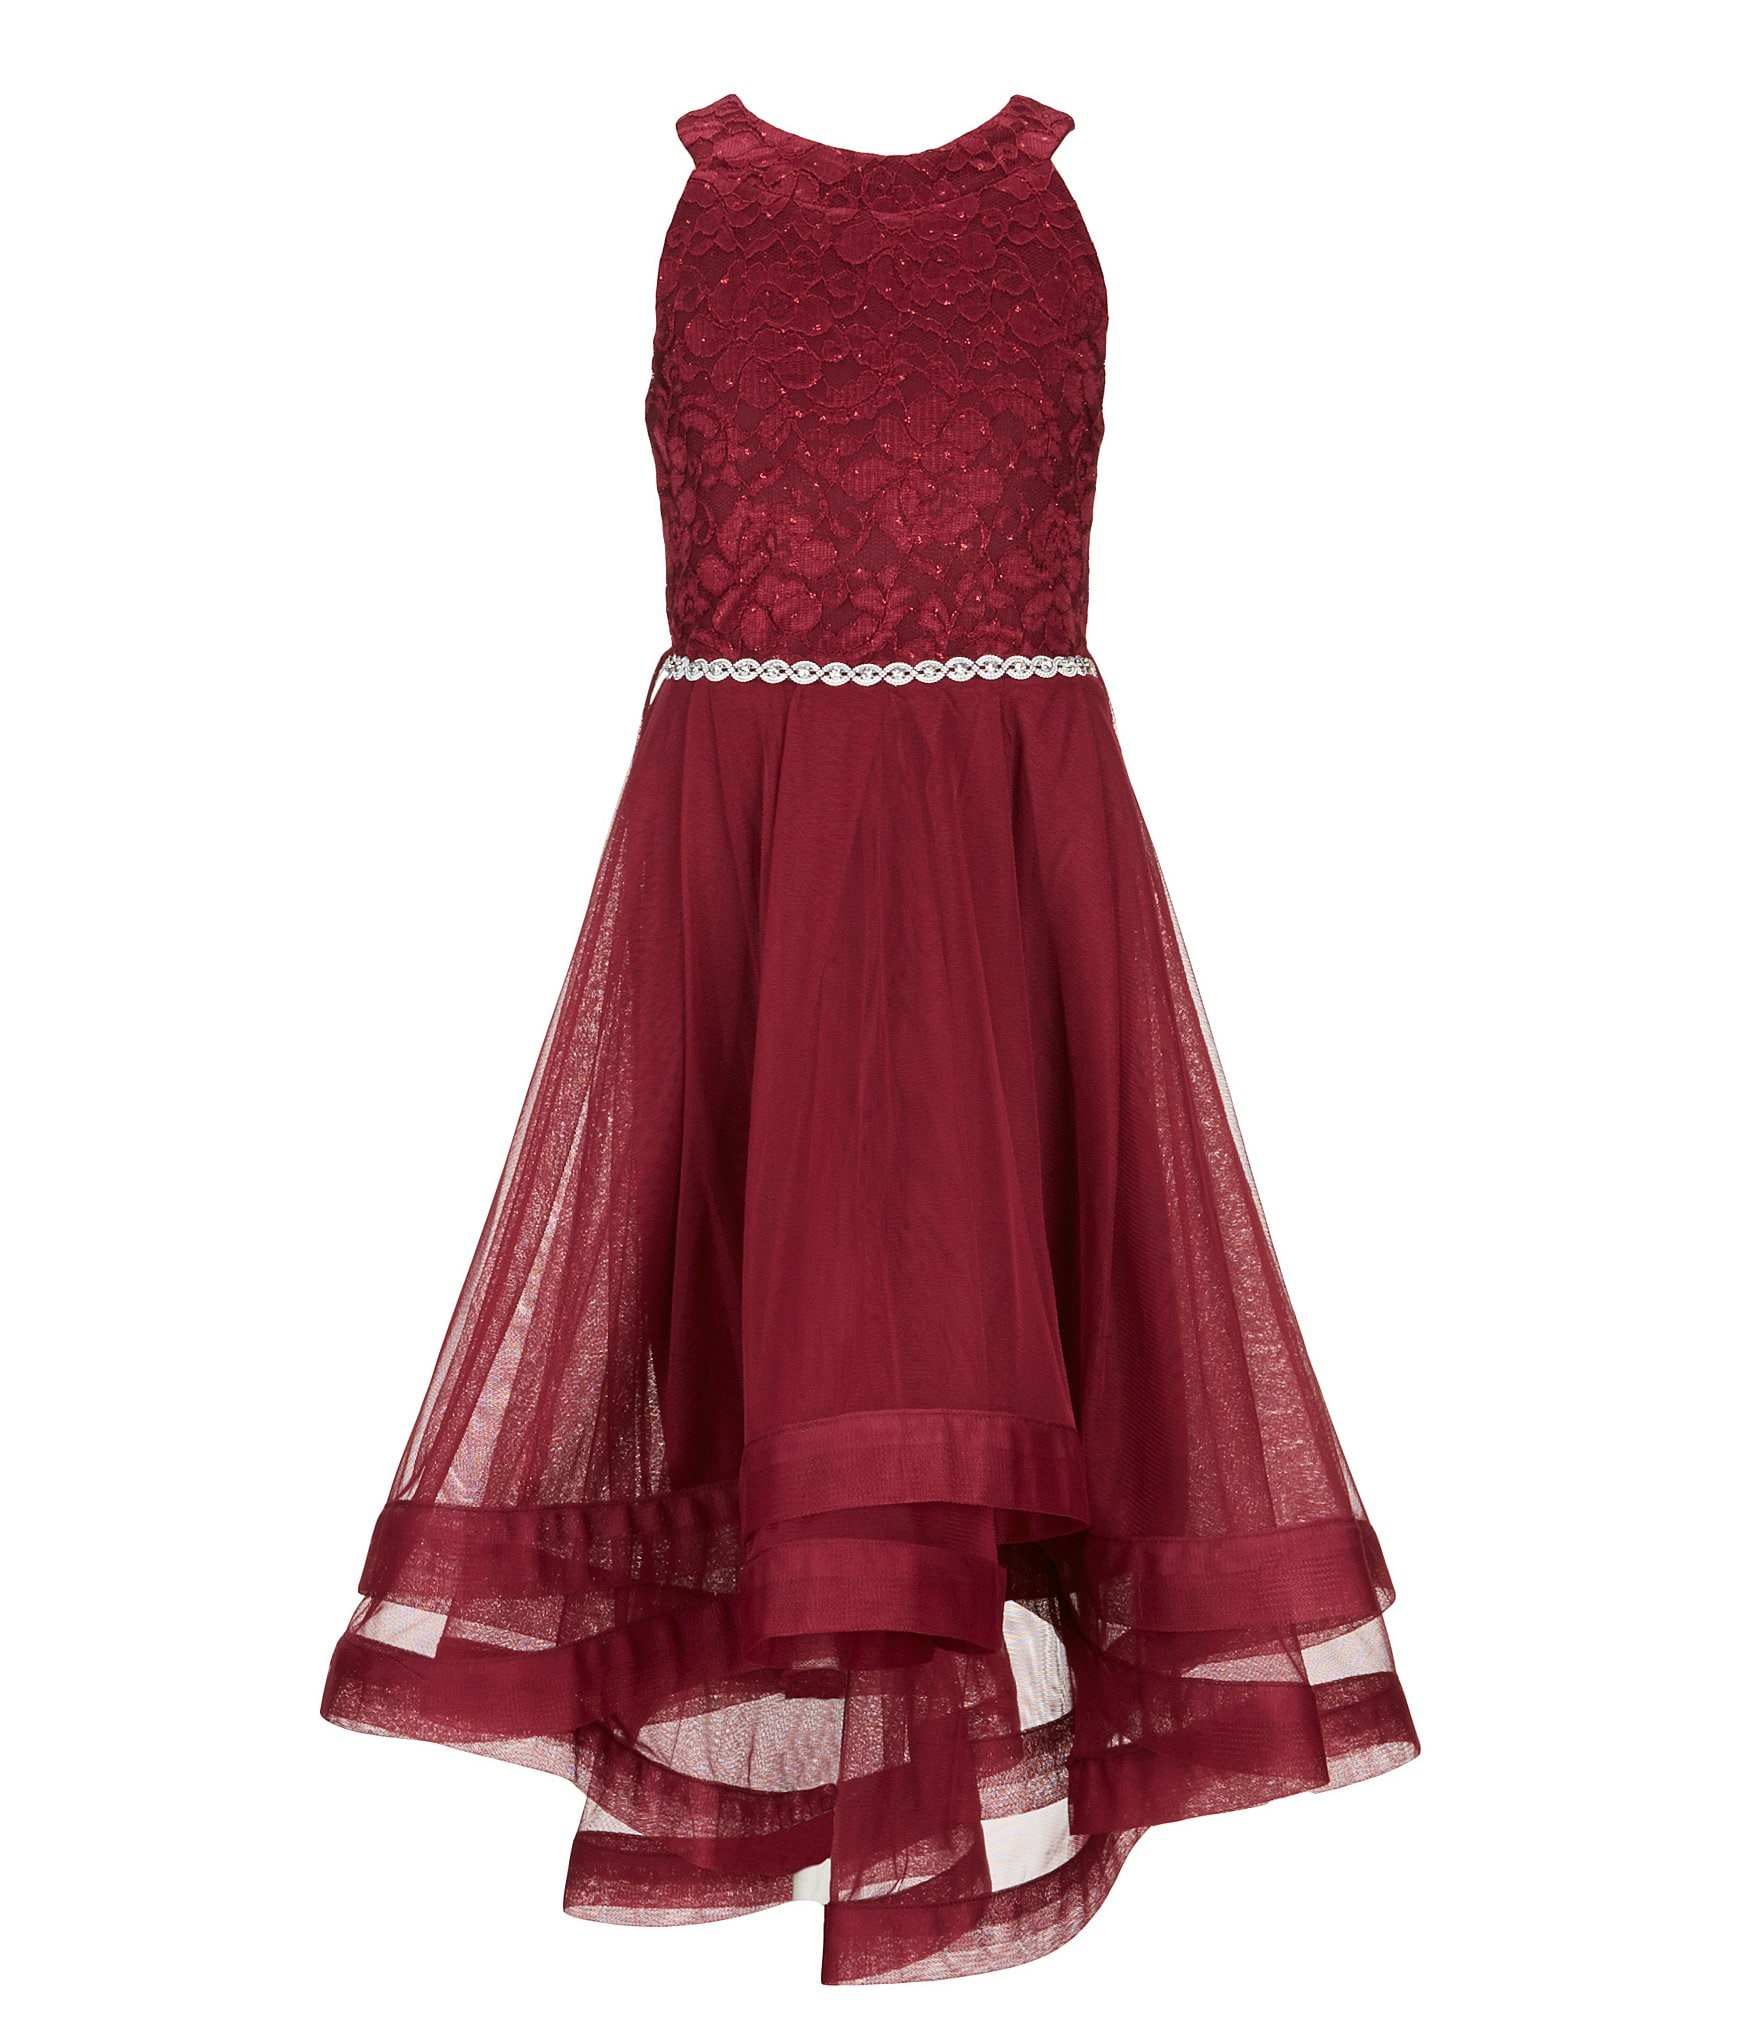 Limited Availability Kids Girls Dresses Party Dresses Big